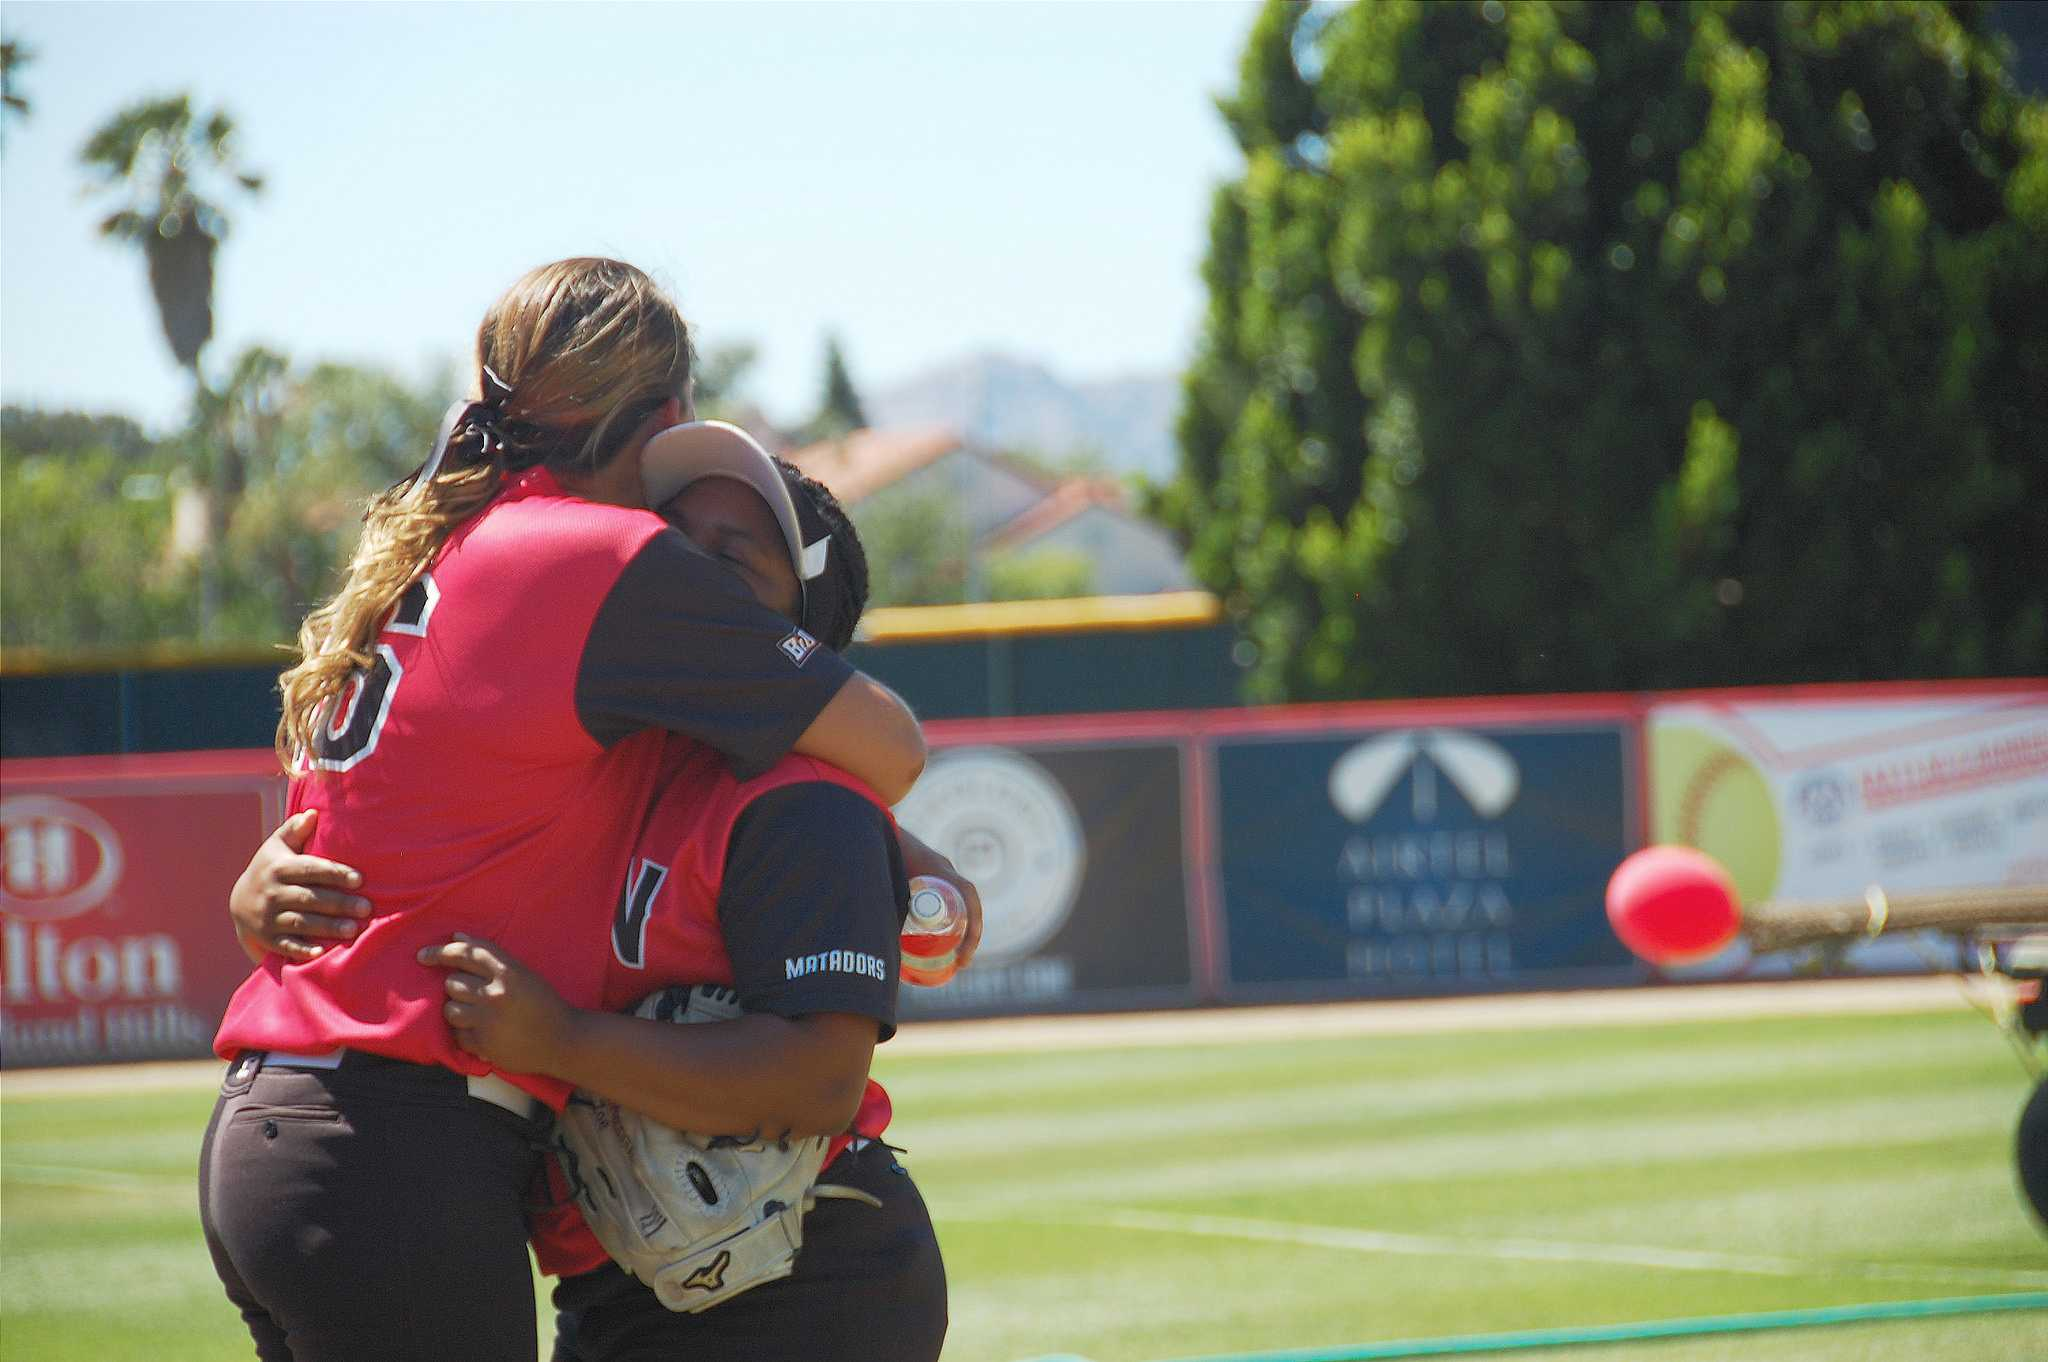 Pitchers+Brianna+Elder+%28left%29+and+Zoe+Conley+%28right%29+embrace+after+clinching+a+share+of+the+Big+West+Title+after+defeating+the+University+of+Hawai%27i+on+Saturday%2C+May+2.+Cladellain+David%2FPhoto+Editor